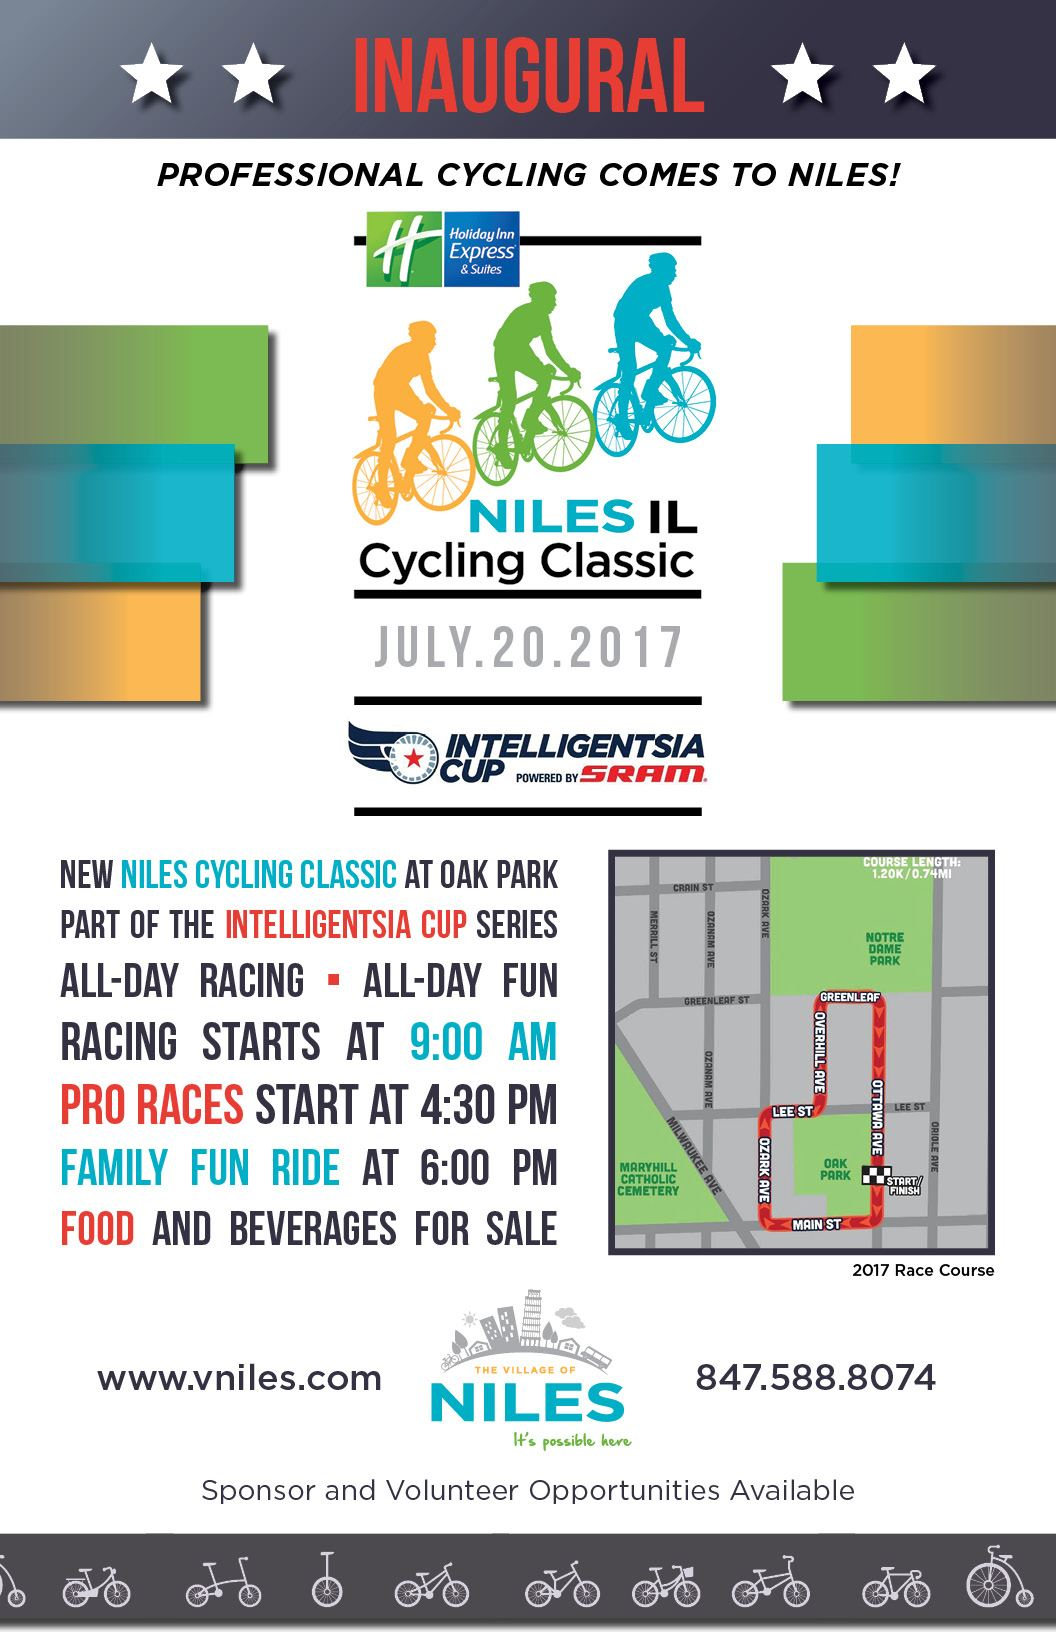 A poster for the Niles Cycling Classic, which takes place on July 20 at Oak Park.